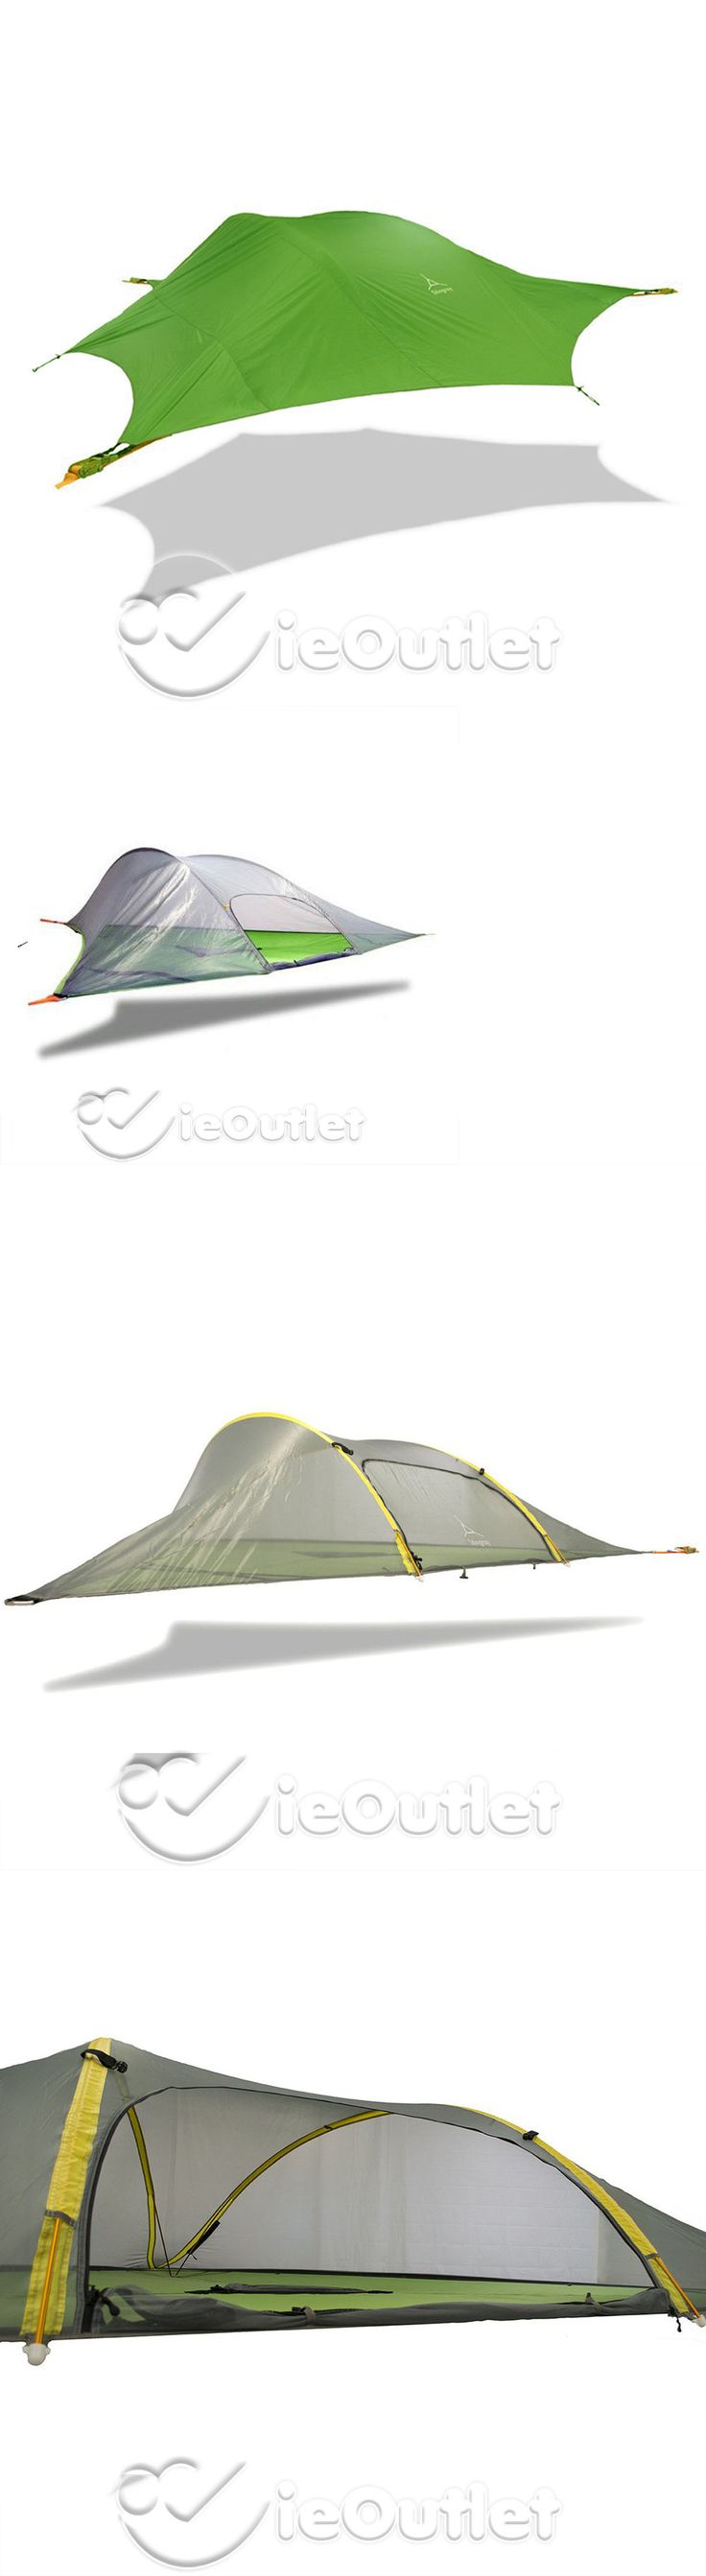 Tents 179010: Brand New Tentsile Stingray 3-Person Tree House Hammock Tent W Fresh Green Fly -> BUY IT NOW ONLY: $449.95 on eBay!